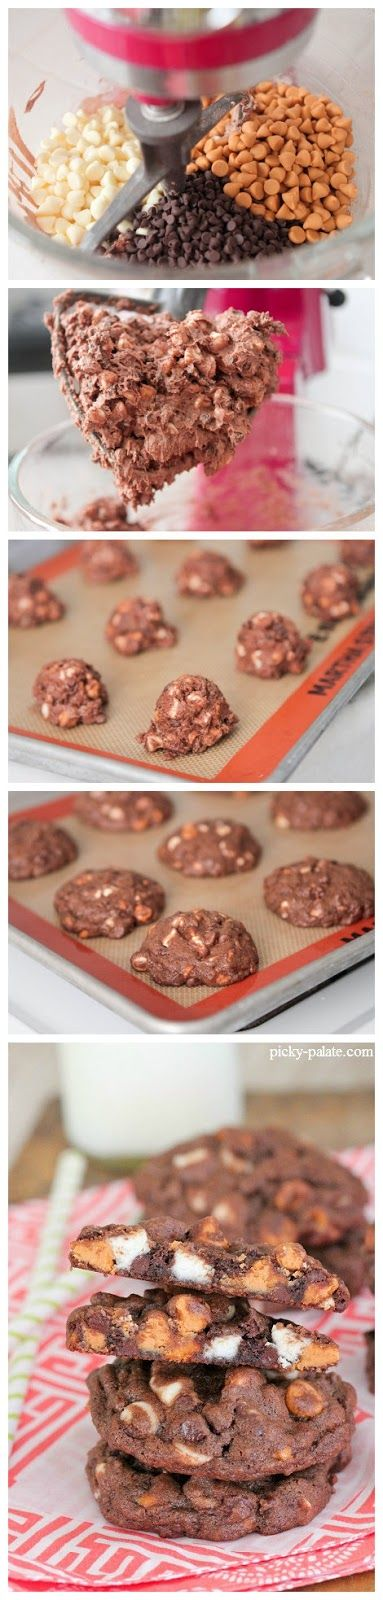 Triple Chip Chocolate Chunk Cookies | Chocolat & Candy | Pinterest